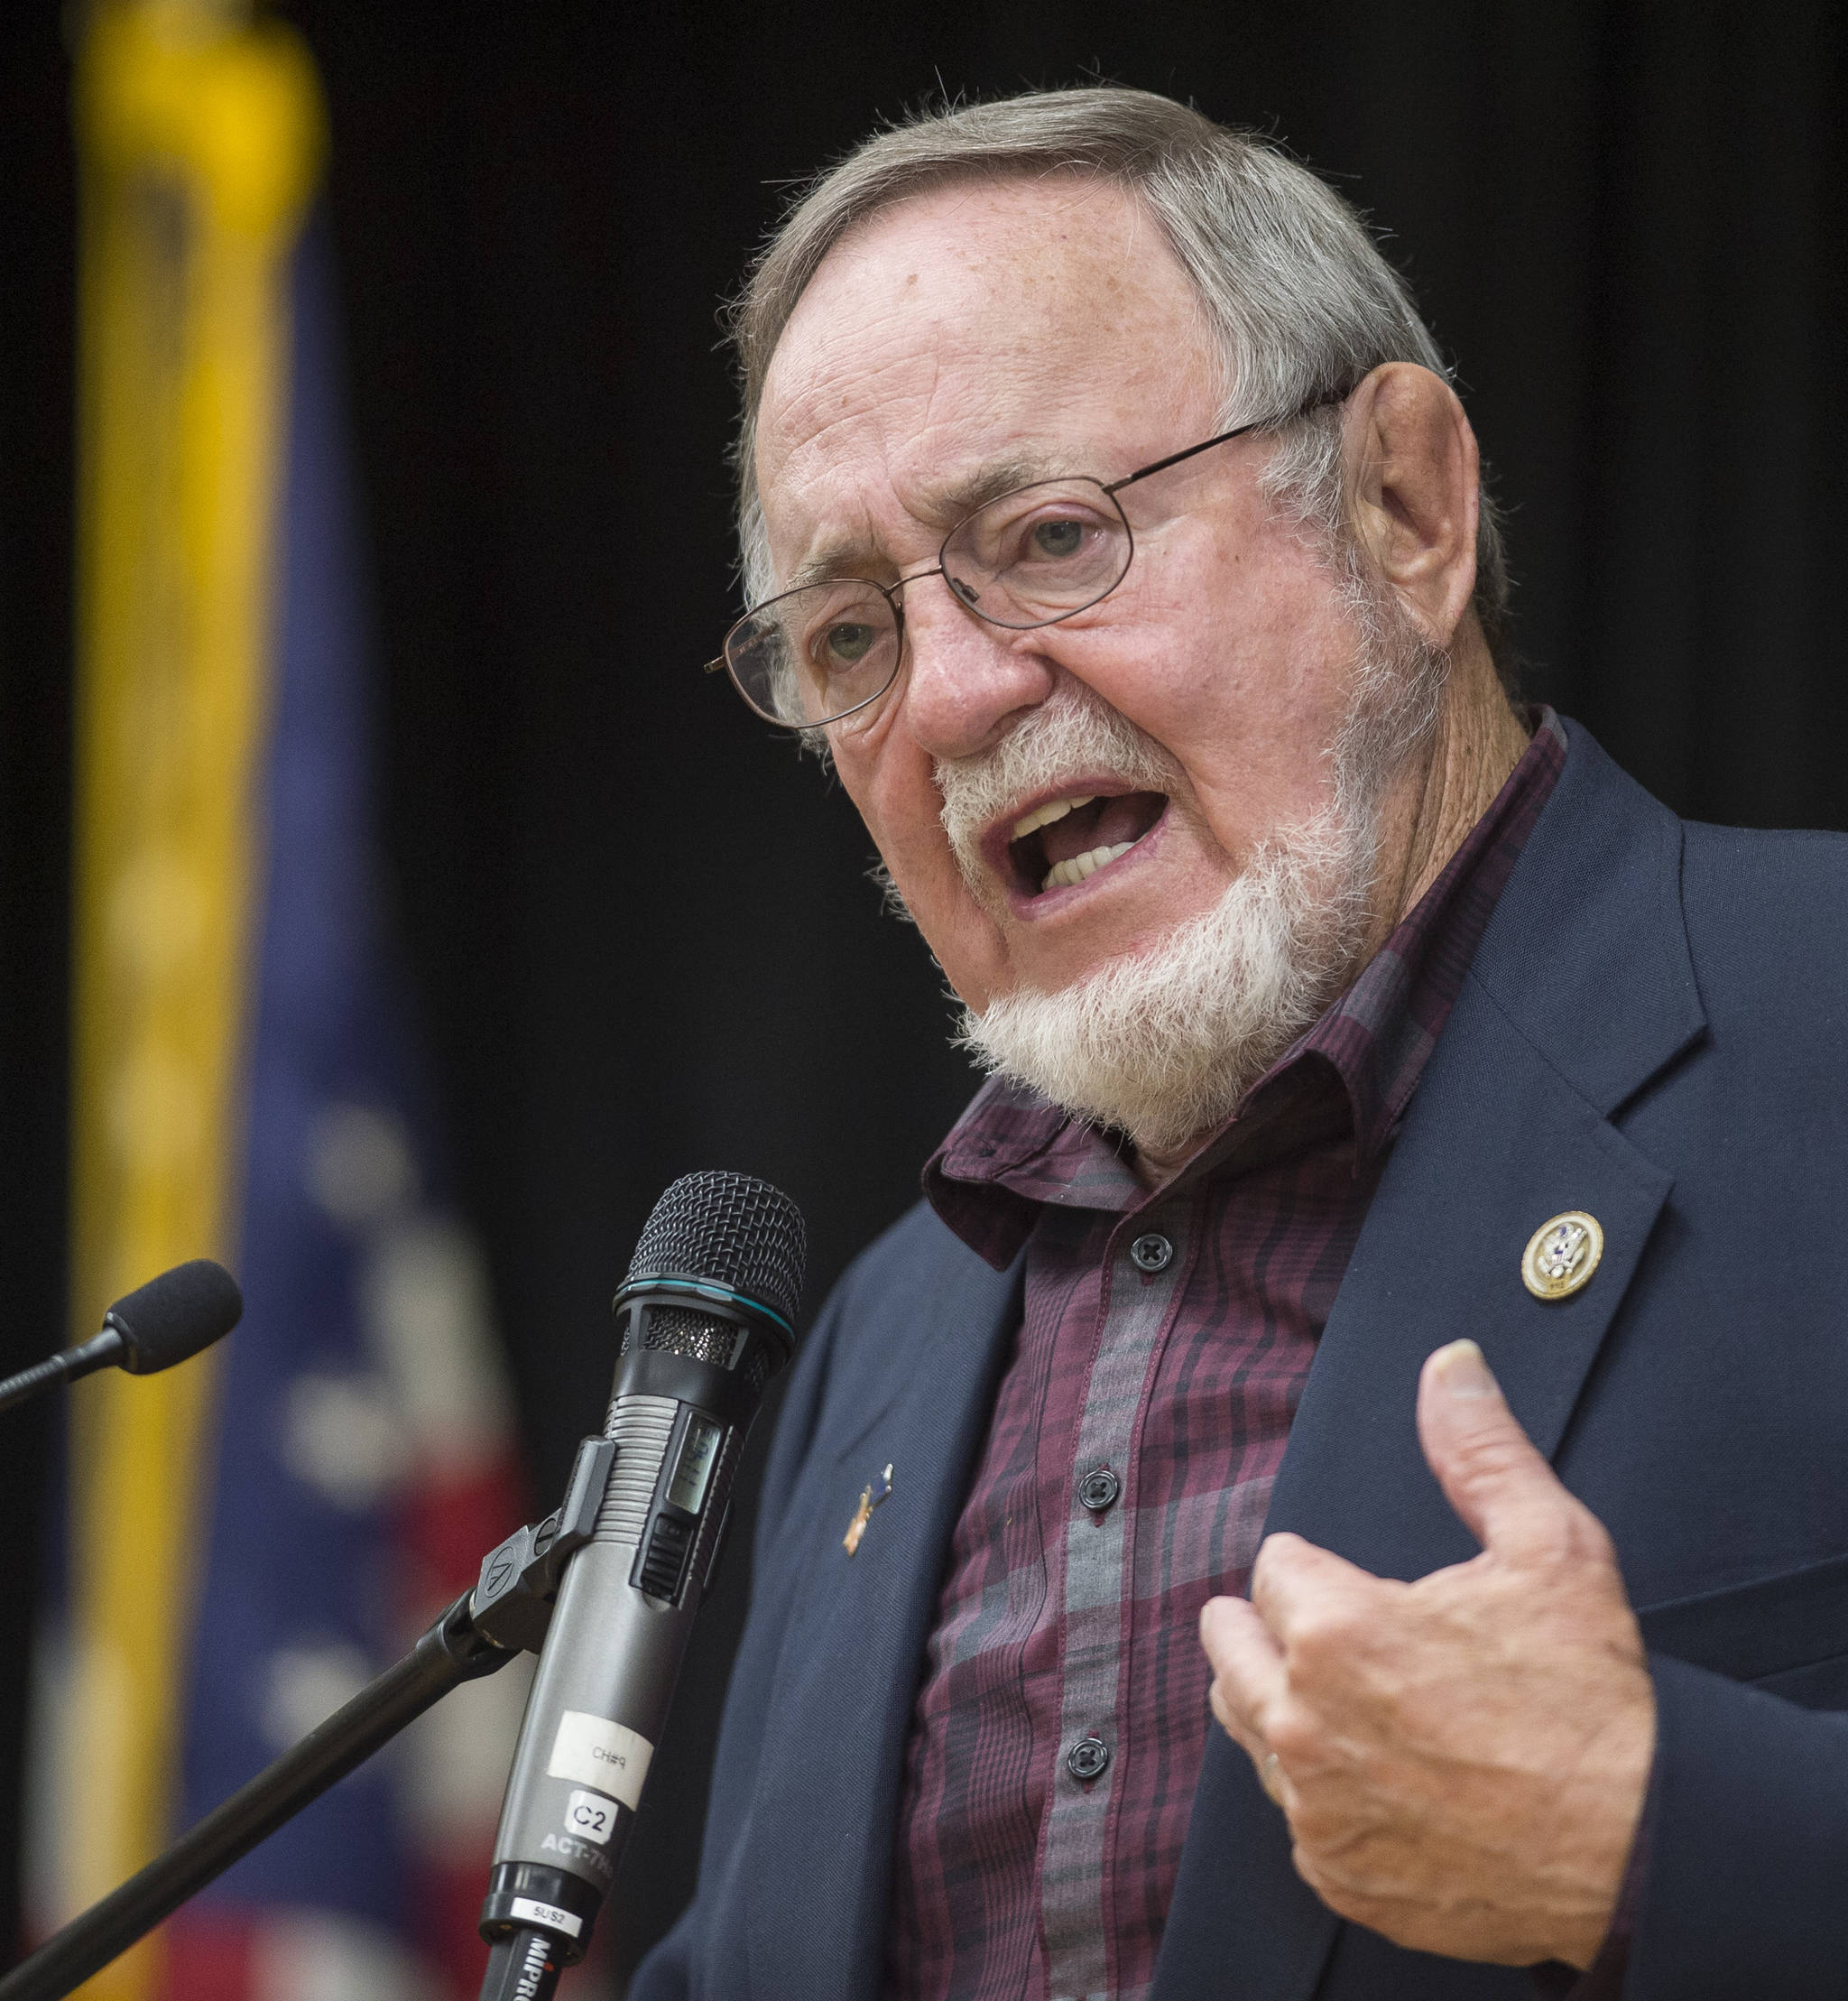 U.S. Rep. Don Young, R-Alaska, speaks at the Native Issues Forum at the Elizabeth Peratrovich Hall on Wednesday, August 1, 2018. (Michael Penn | Juneau Empire)